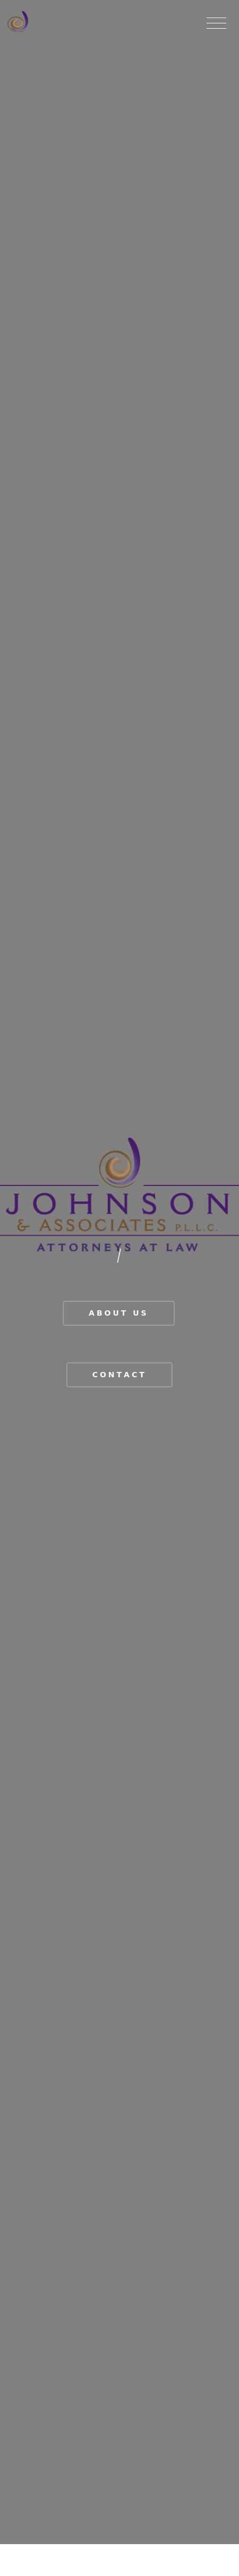 Johnson & Associates, P.L.L.C. - Avondale AZ Lawyers